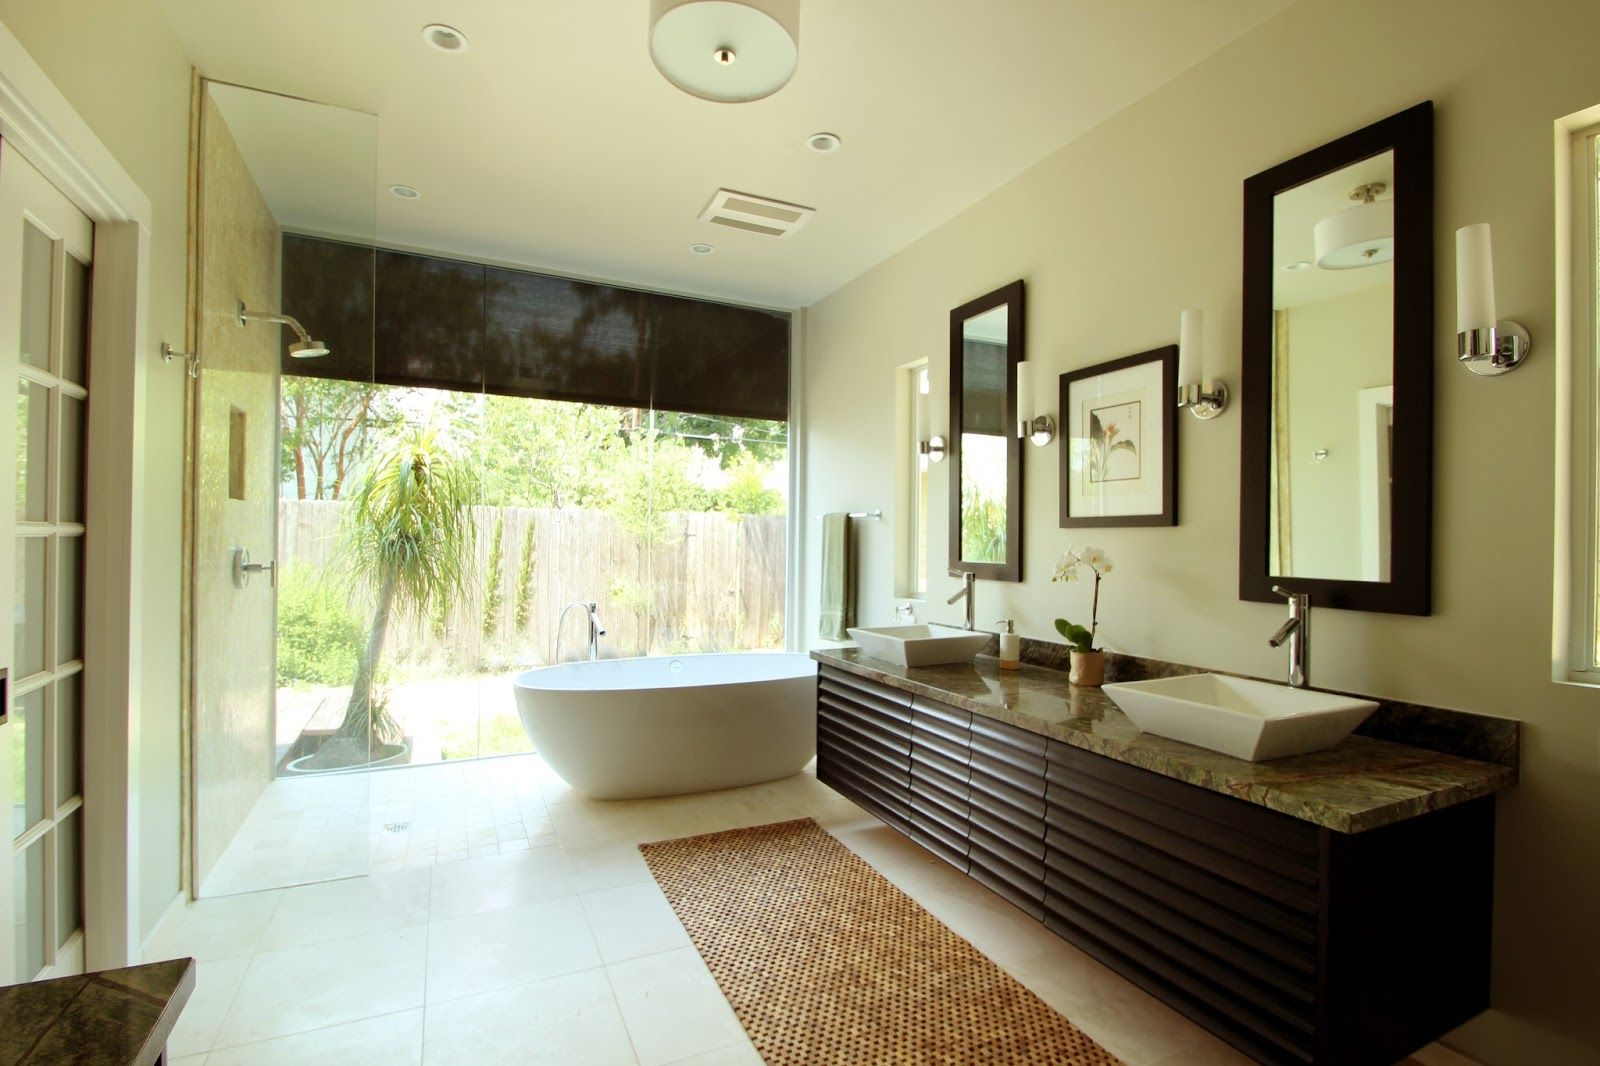 Home ideas for modern master bathroom master baths Master bathroom remodel ideas